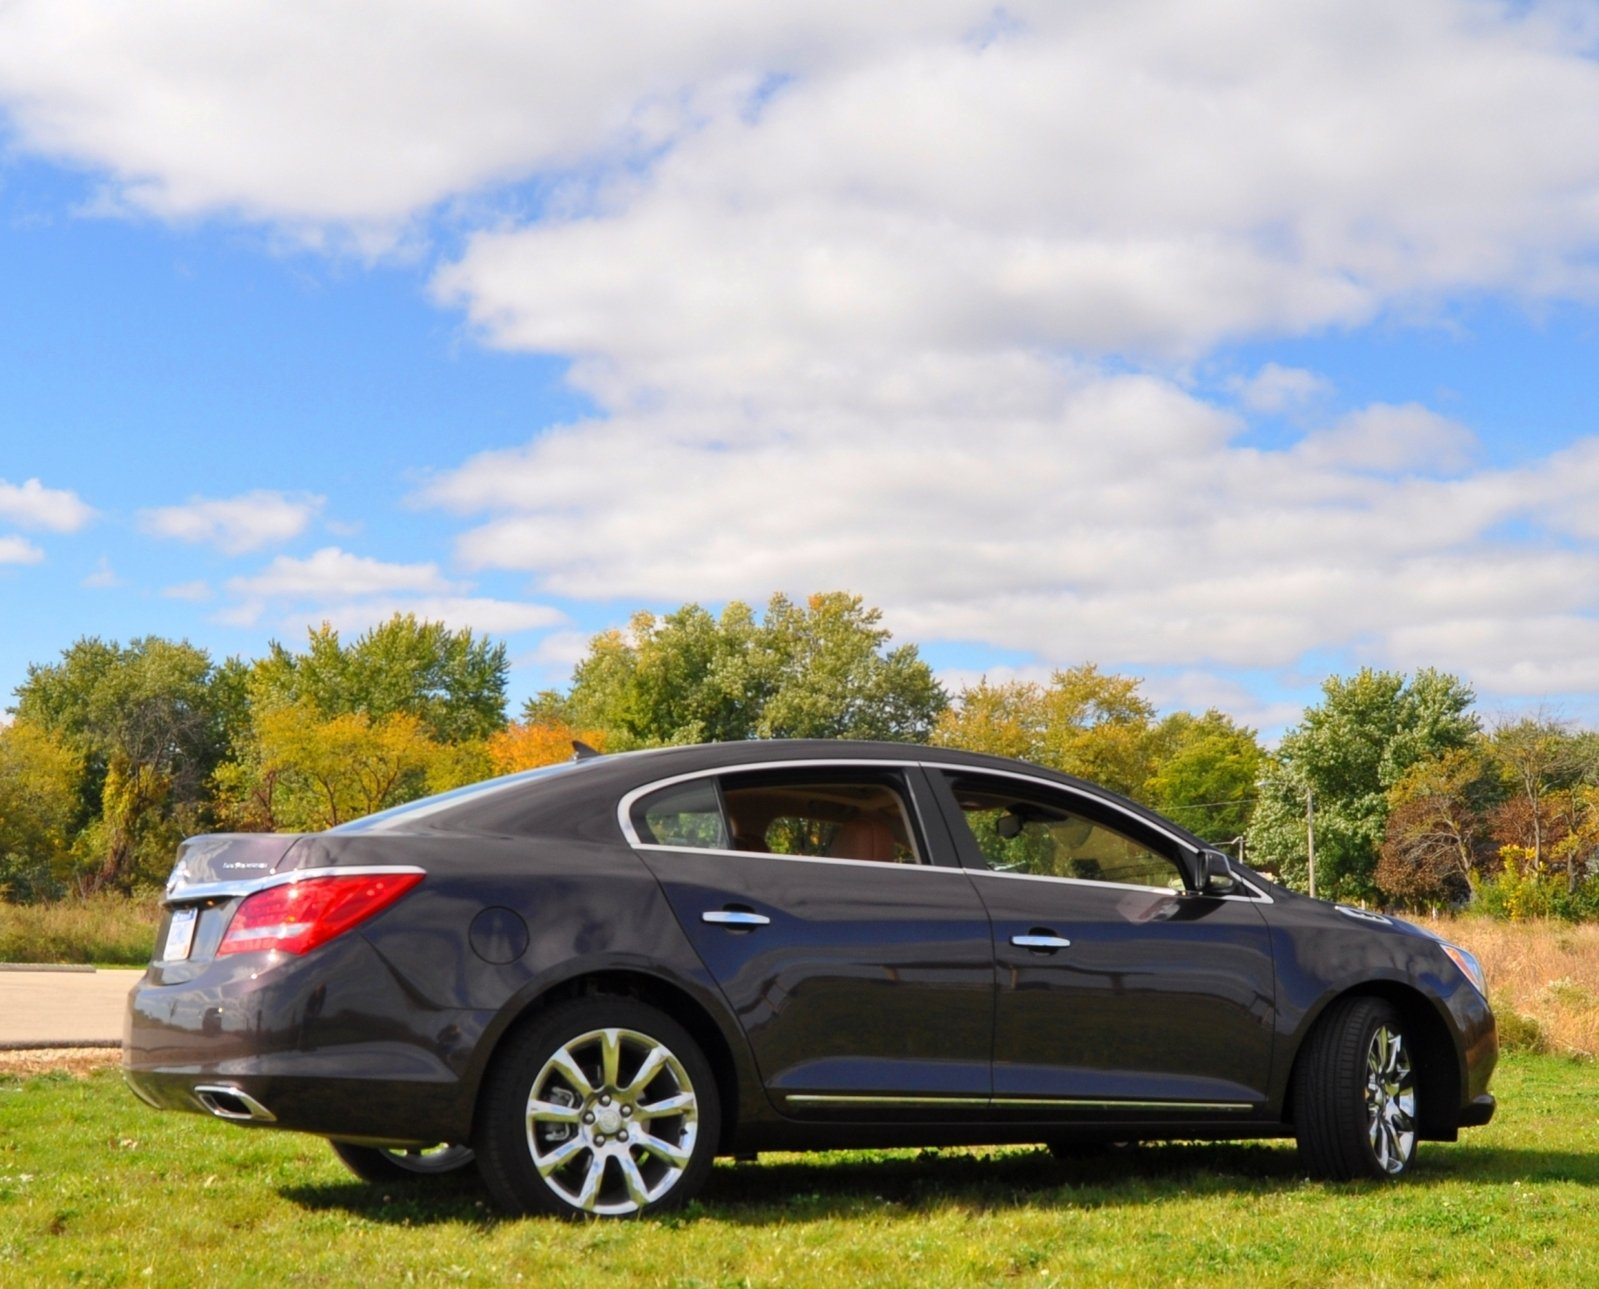 2014 buick lacrosse driven picture 528793 car review top speed. Black Bedroom Furniture Sets. Home Design Ideas